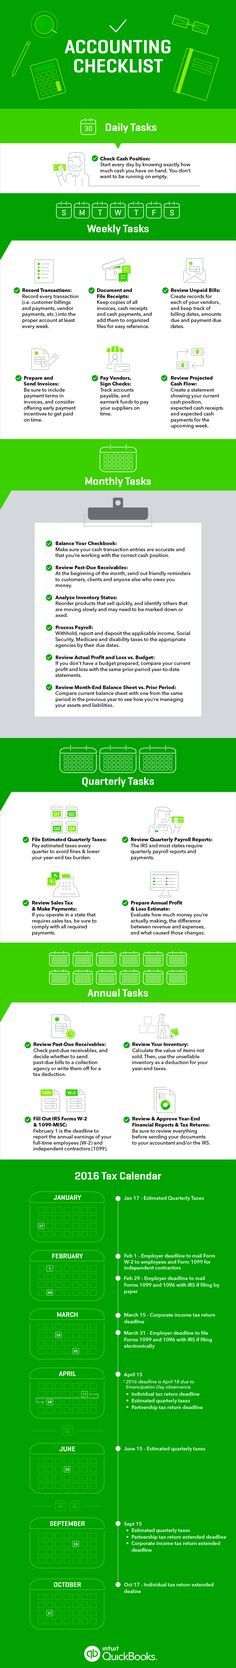 Small Business Accounting Checklist and Infographic 21 Things to - business startup checklist